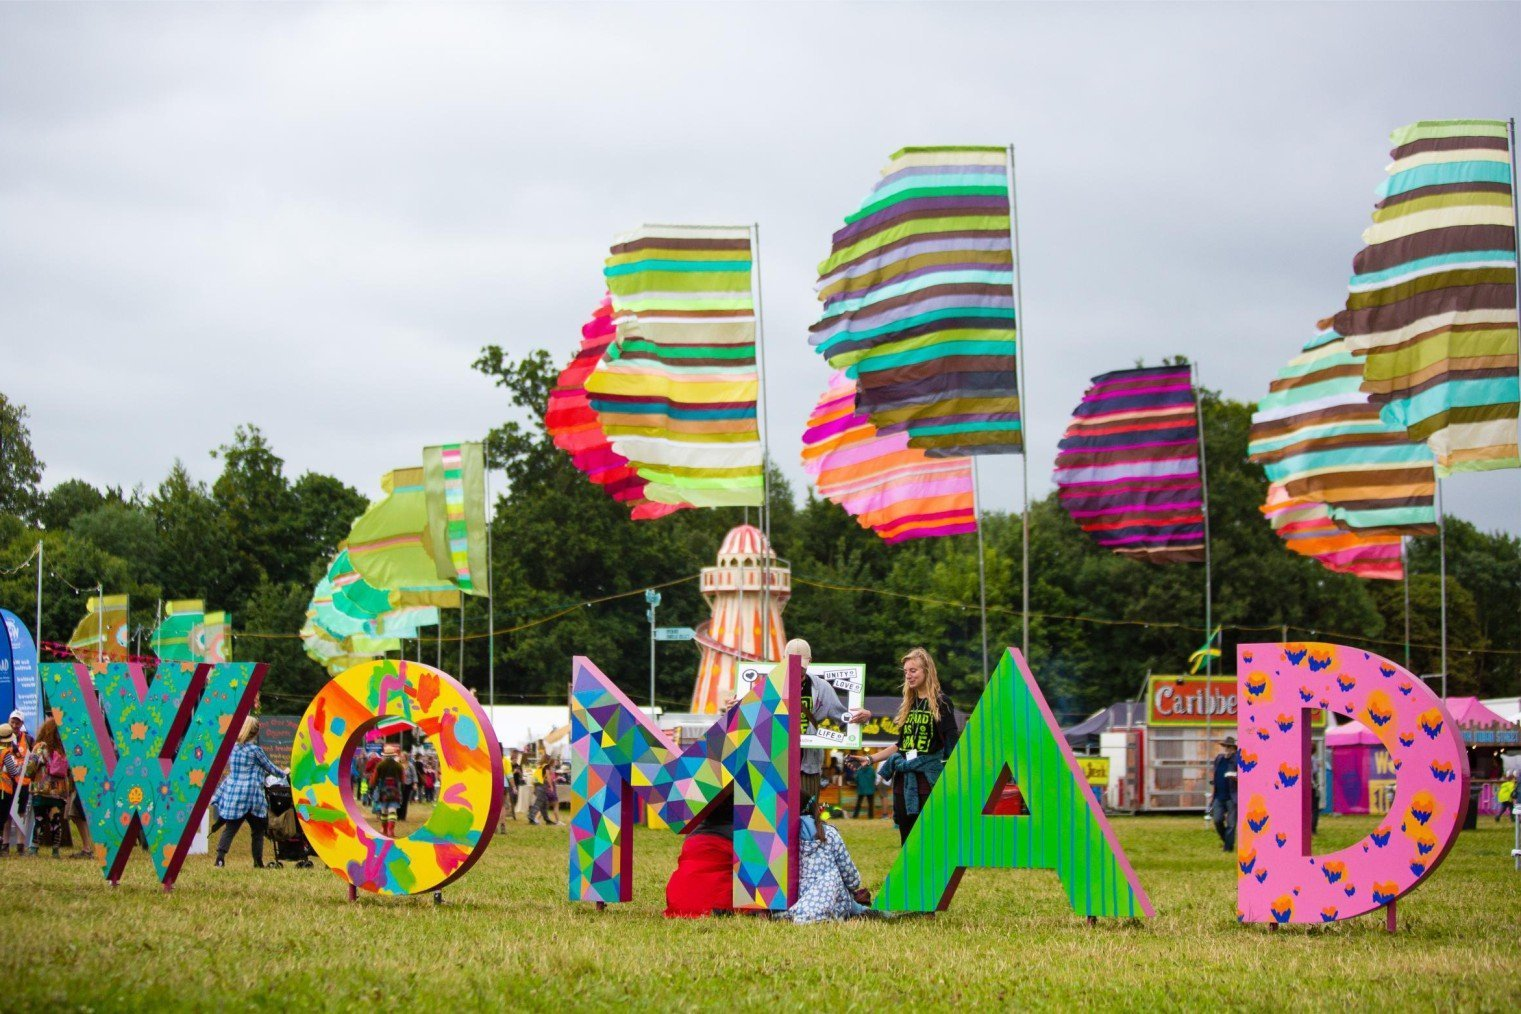 WOMAD — World of Music, Arts and Dance, UK.